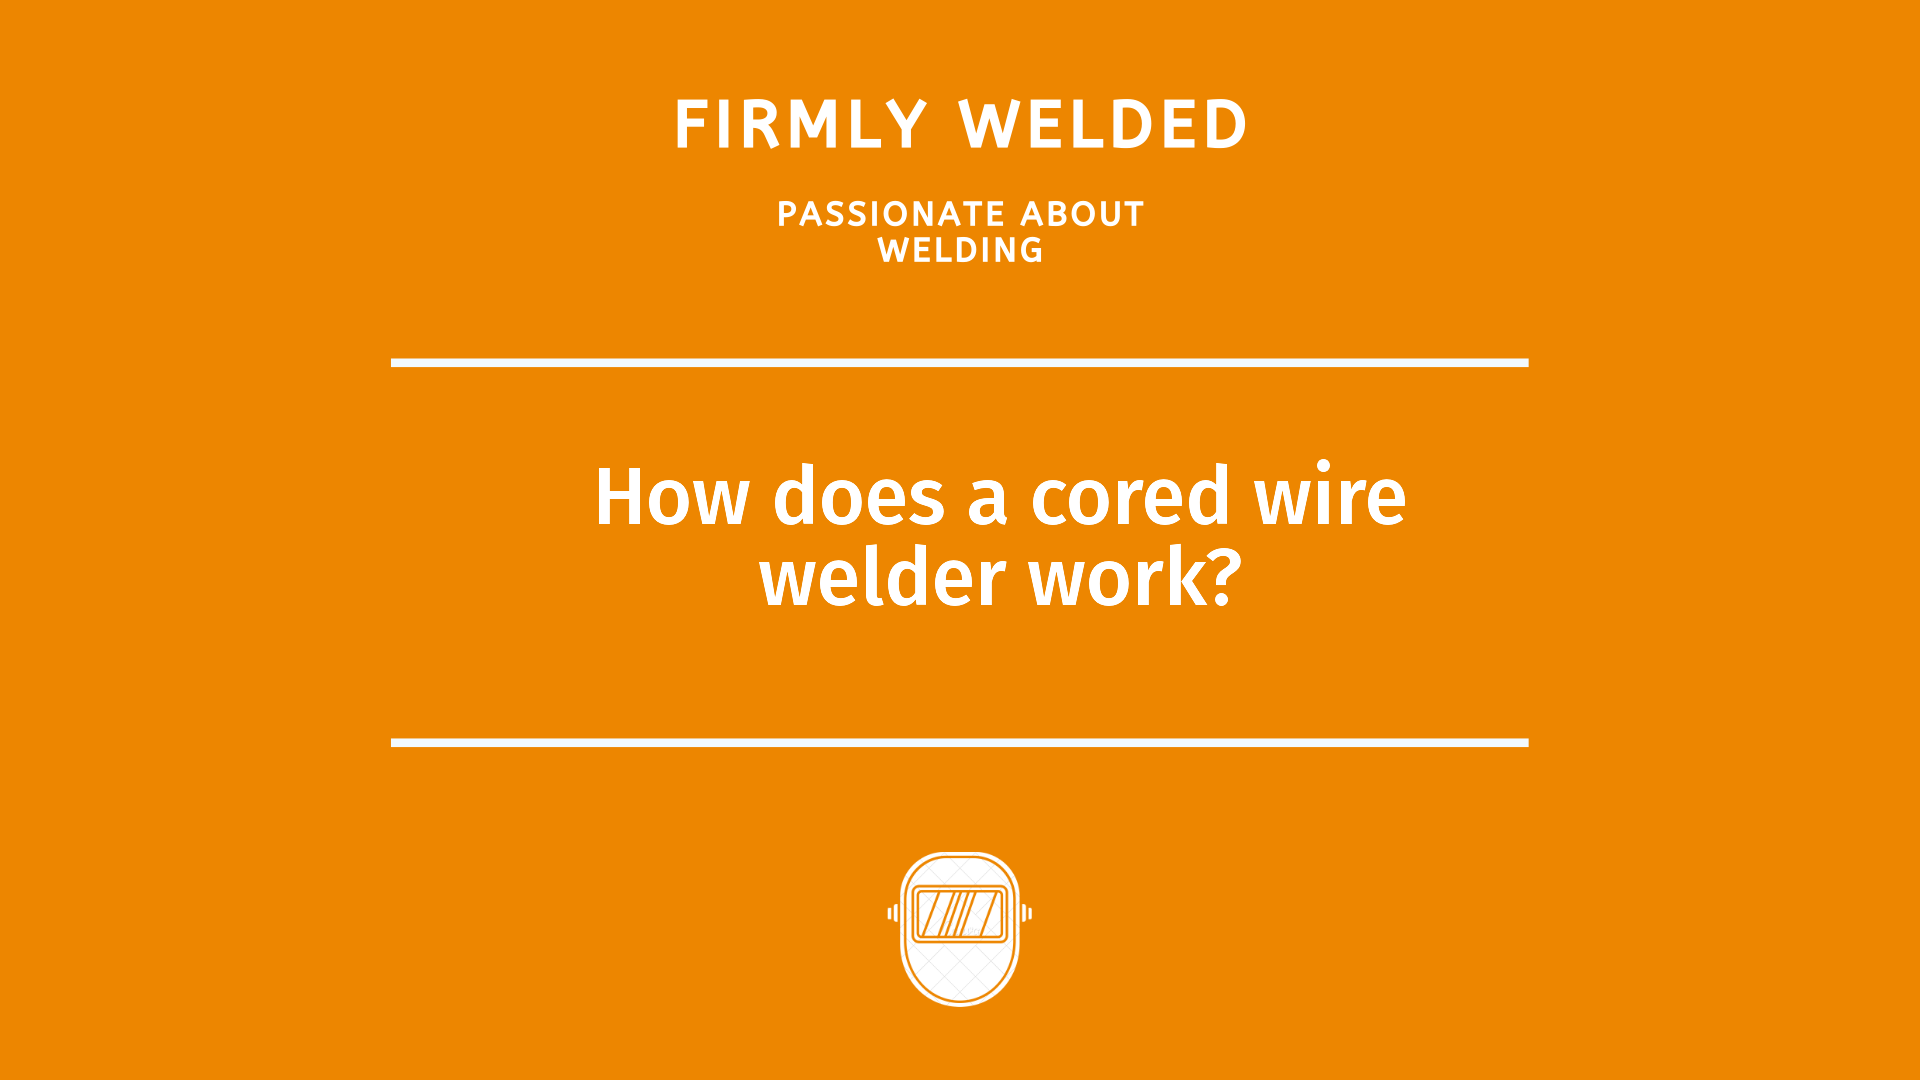 How does a cored wire welder work?